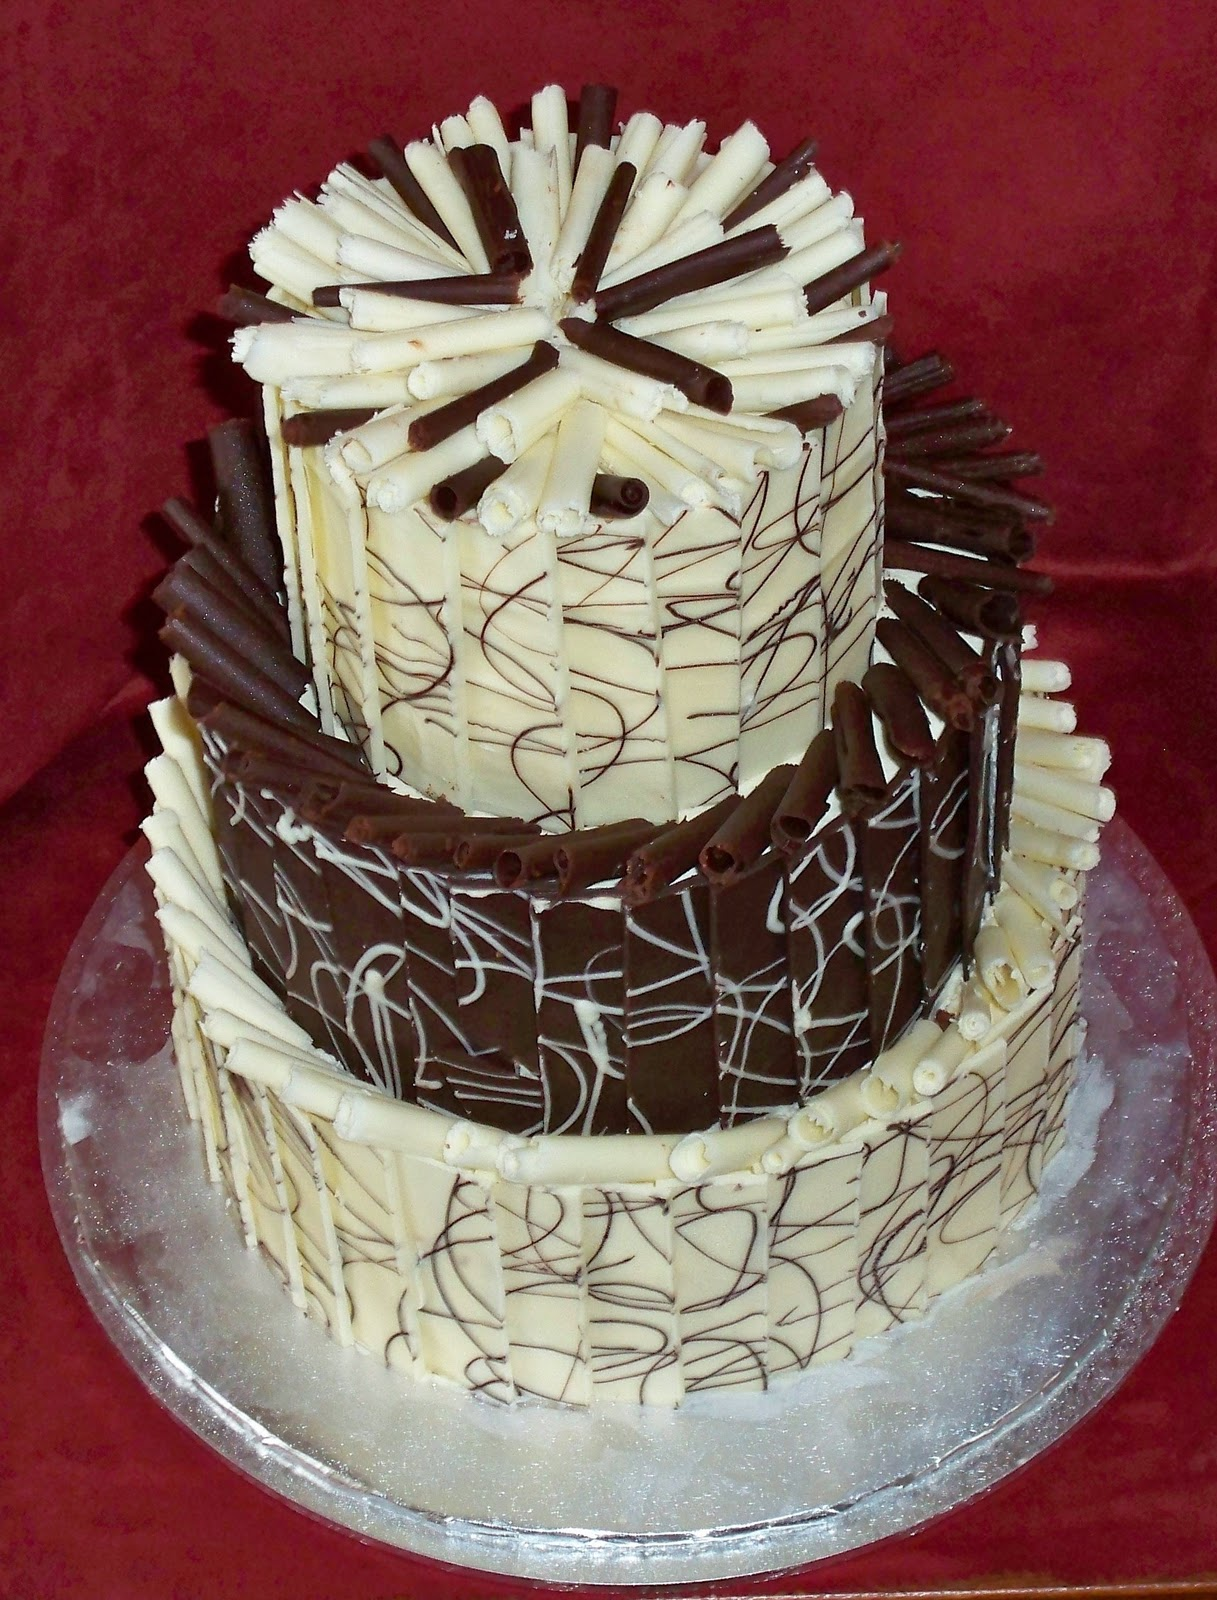 The Top 20+ Unique Chocolate Cakes - Page 14 of 33